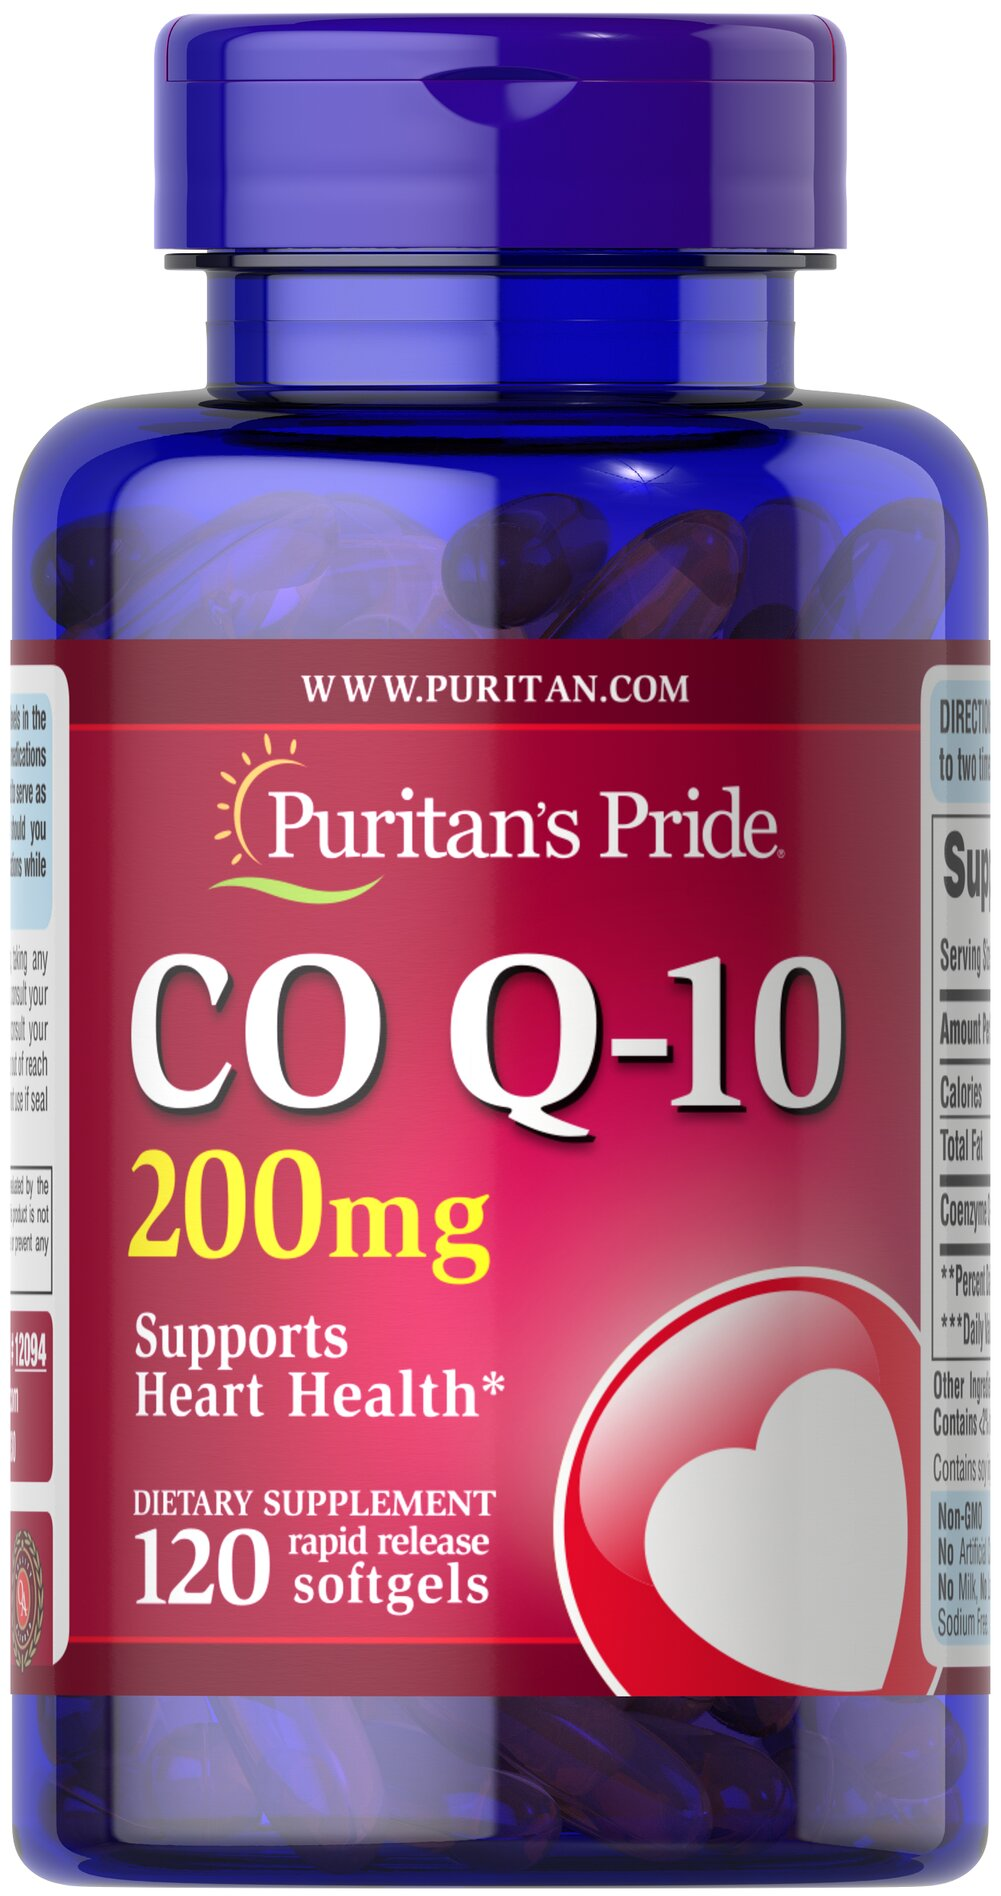 Co Q-10 200 mg <p></p>•    Contributes to your heart and cardiovascular wellness**<br />•    Helps support healthy blood pressure levels already within a normal range**<br />•    Promotes energy production within your heart and muscles**<br /><br /><br />Made with a natural, highly bioavailable form of Co Q 10 — Q-Sorb.™ Important for Statin medication users++ — taking Q-Sor